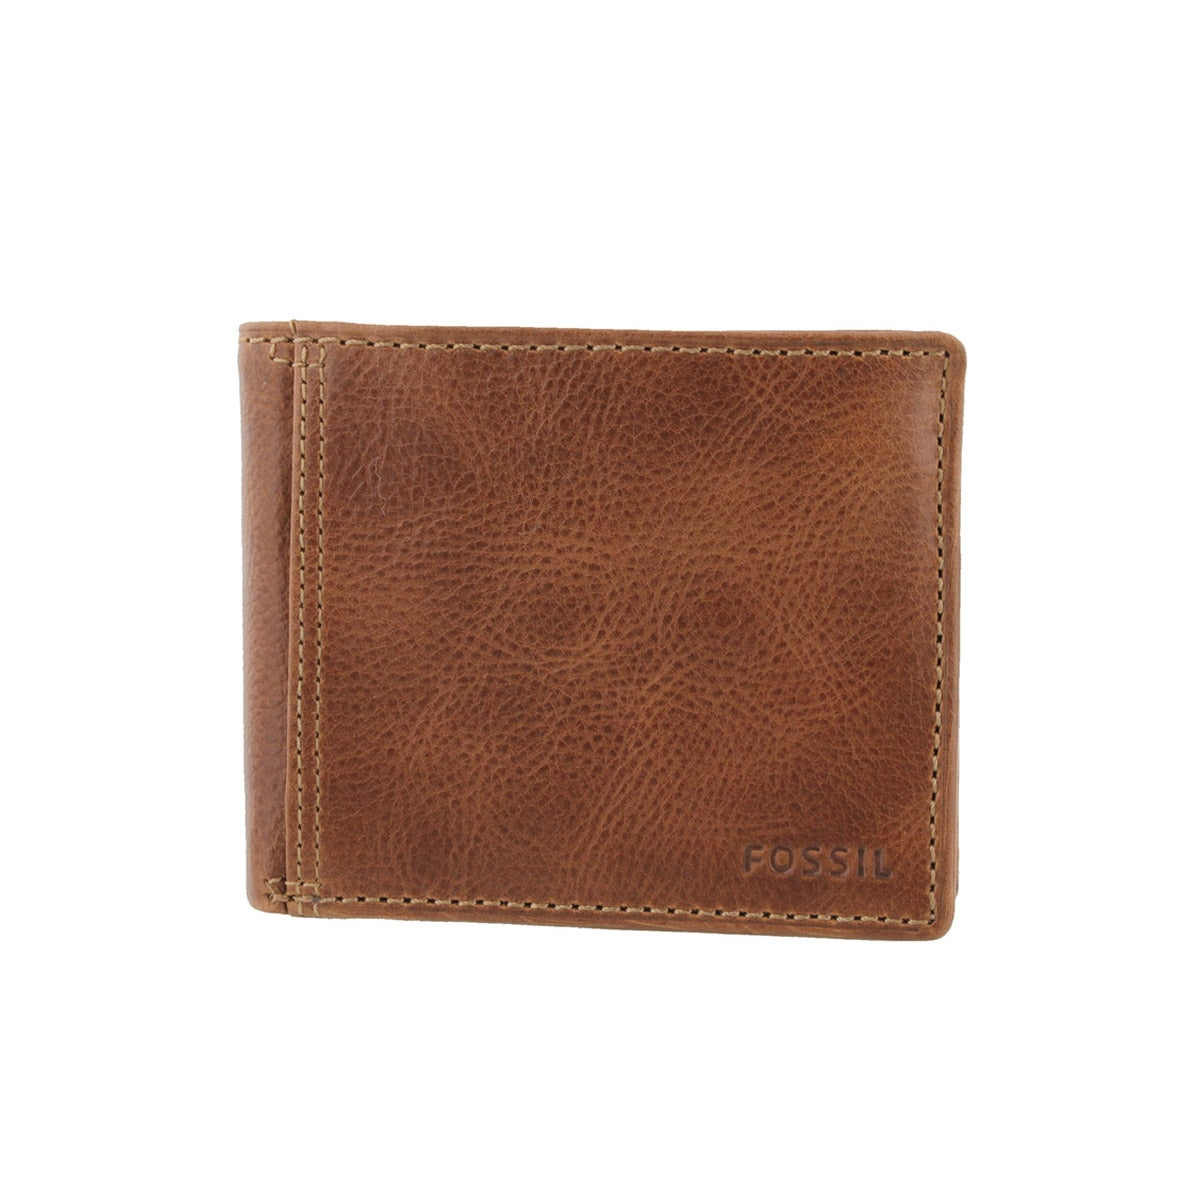 Men's BRADLEY SLIM bifold tan leather wallet